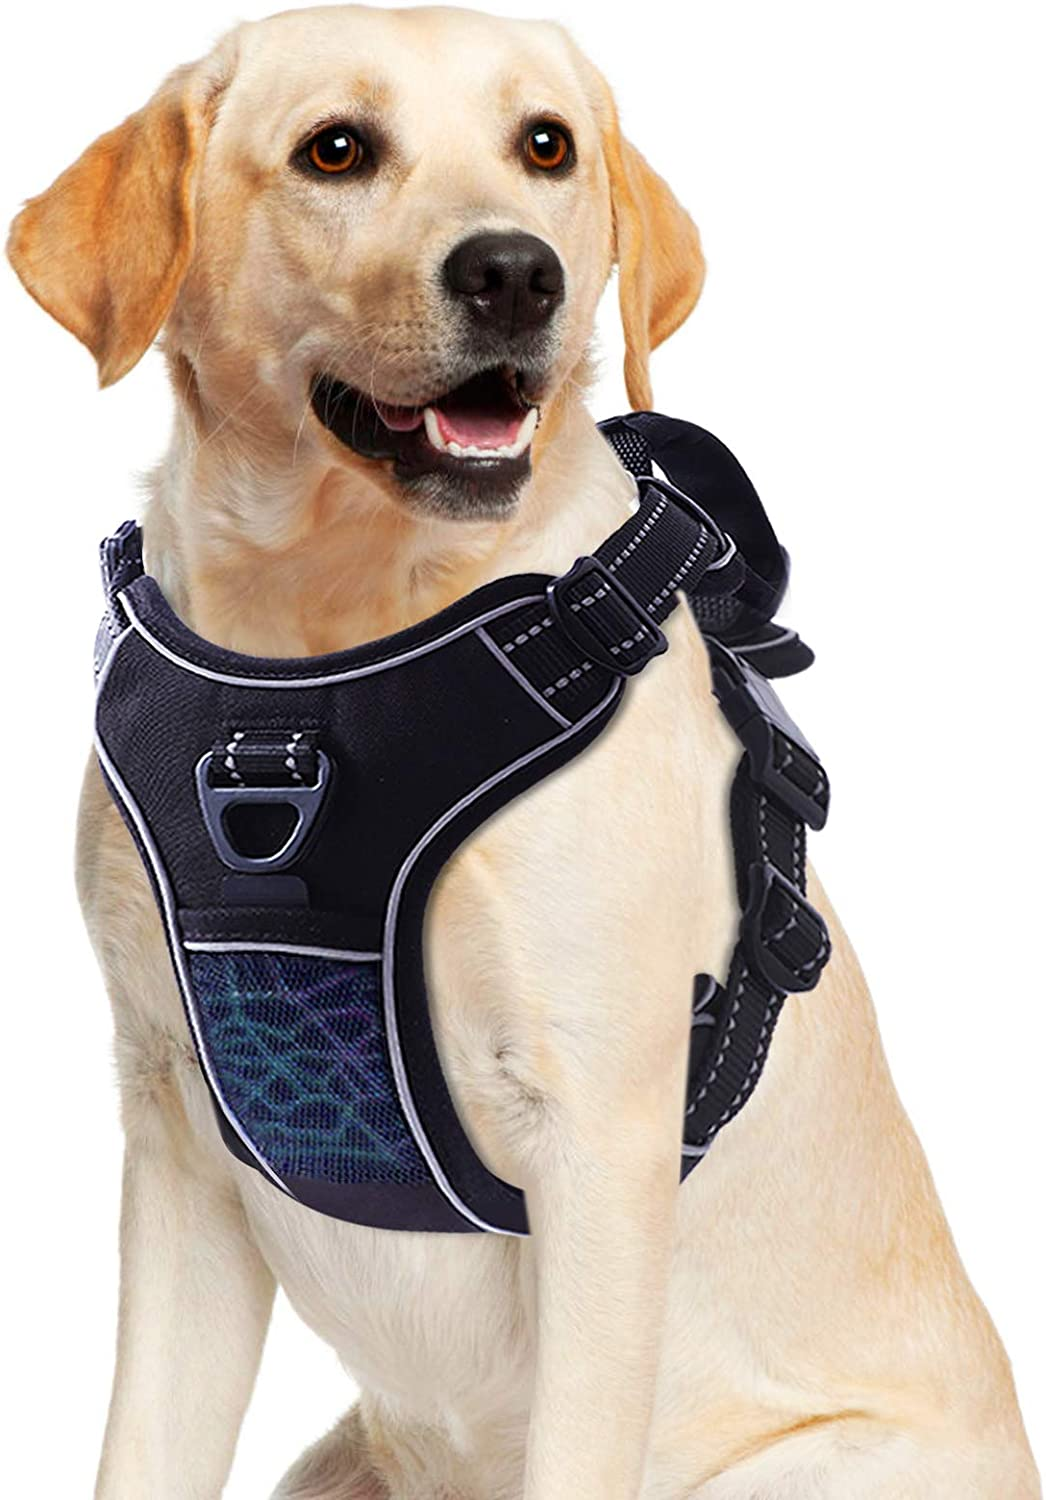 TAMOWA Dog Harness online shop for Large Adjustable Dogs Reflective 67% OFF of fixed price Har